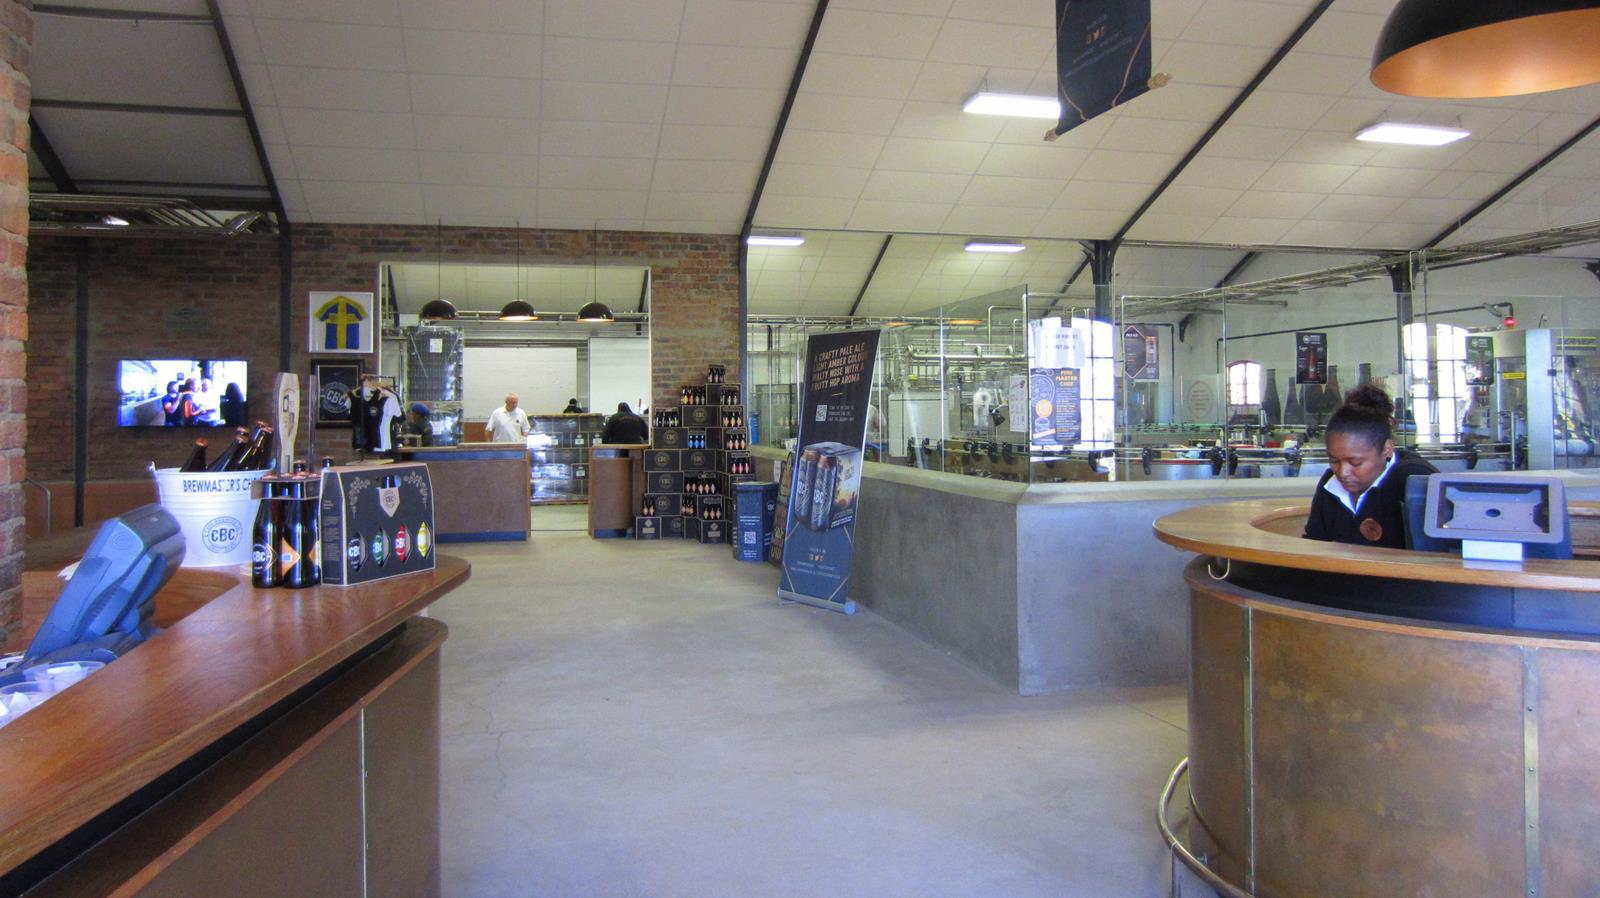 At the Cape Brewing Company you can see how different beers are crafted.